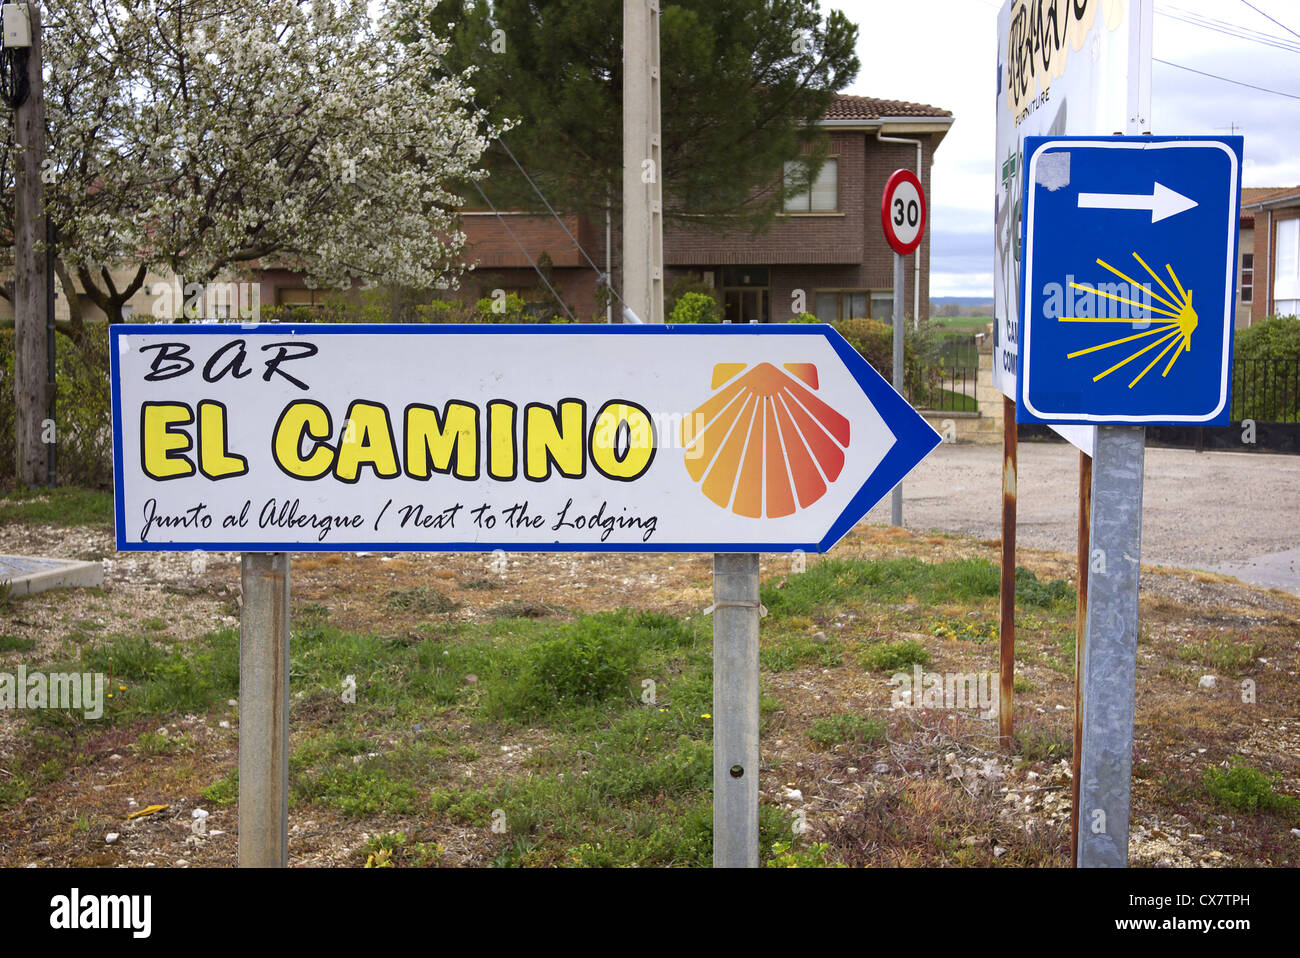 A sign for a bar in Tardajos, Spain, en route to Santiago de Compostela Stock Photo